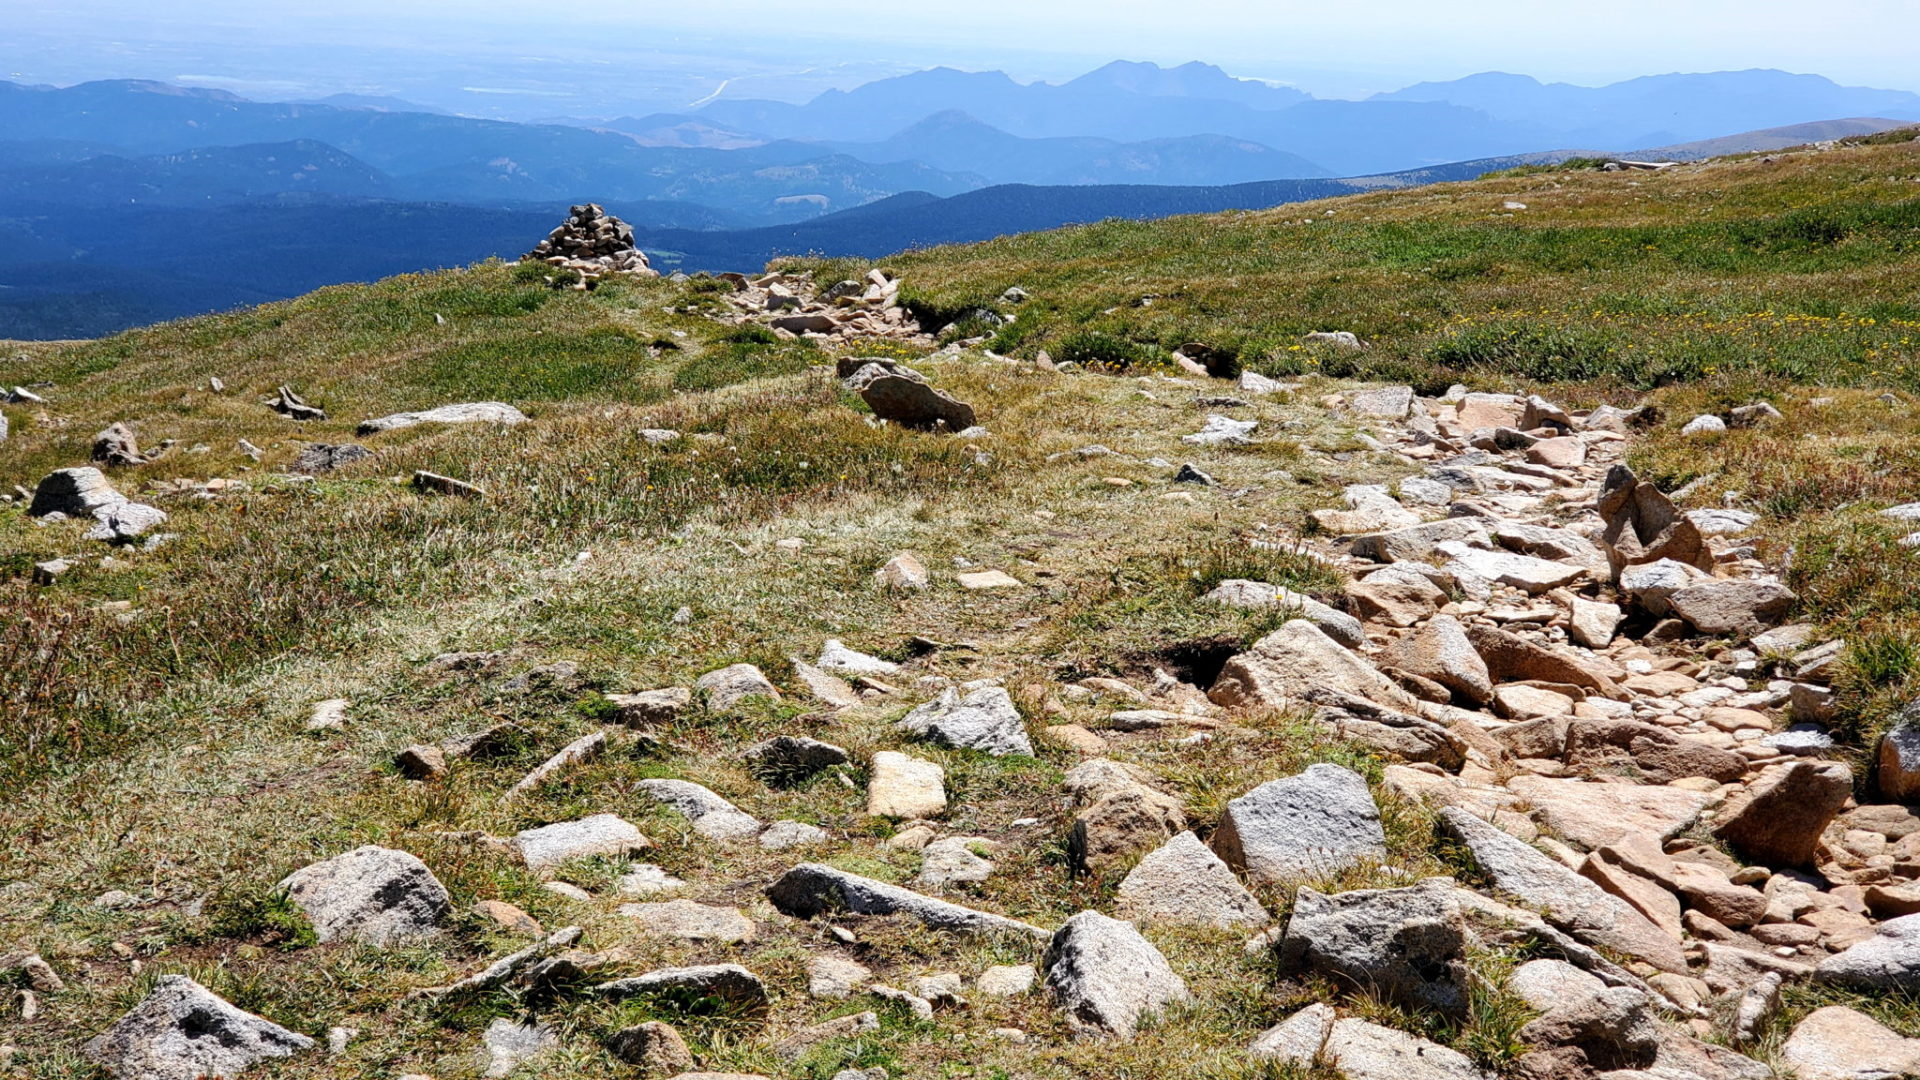 The trail marked by cairns